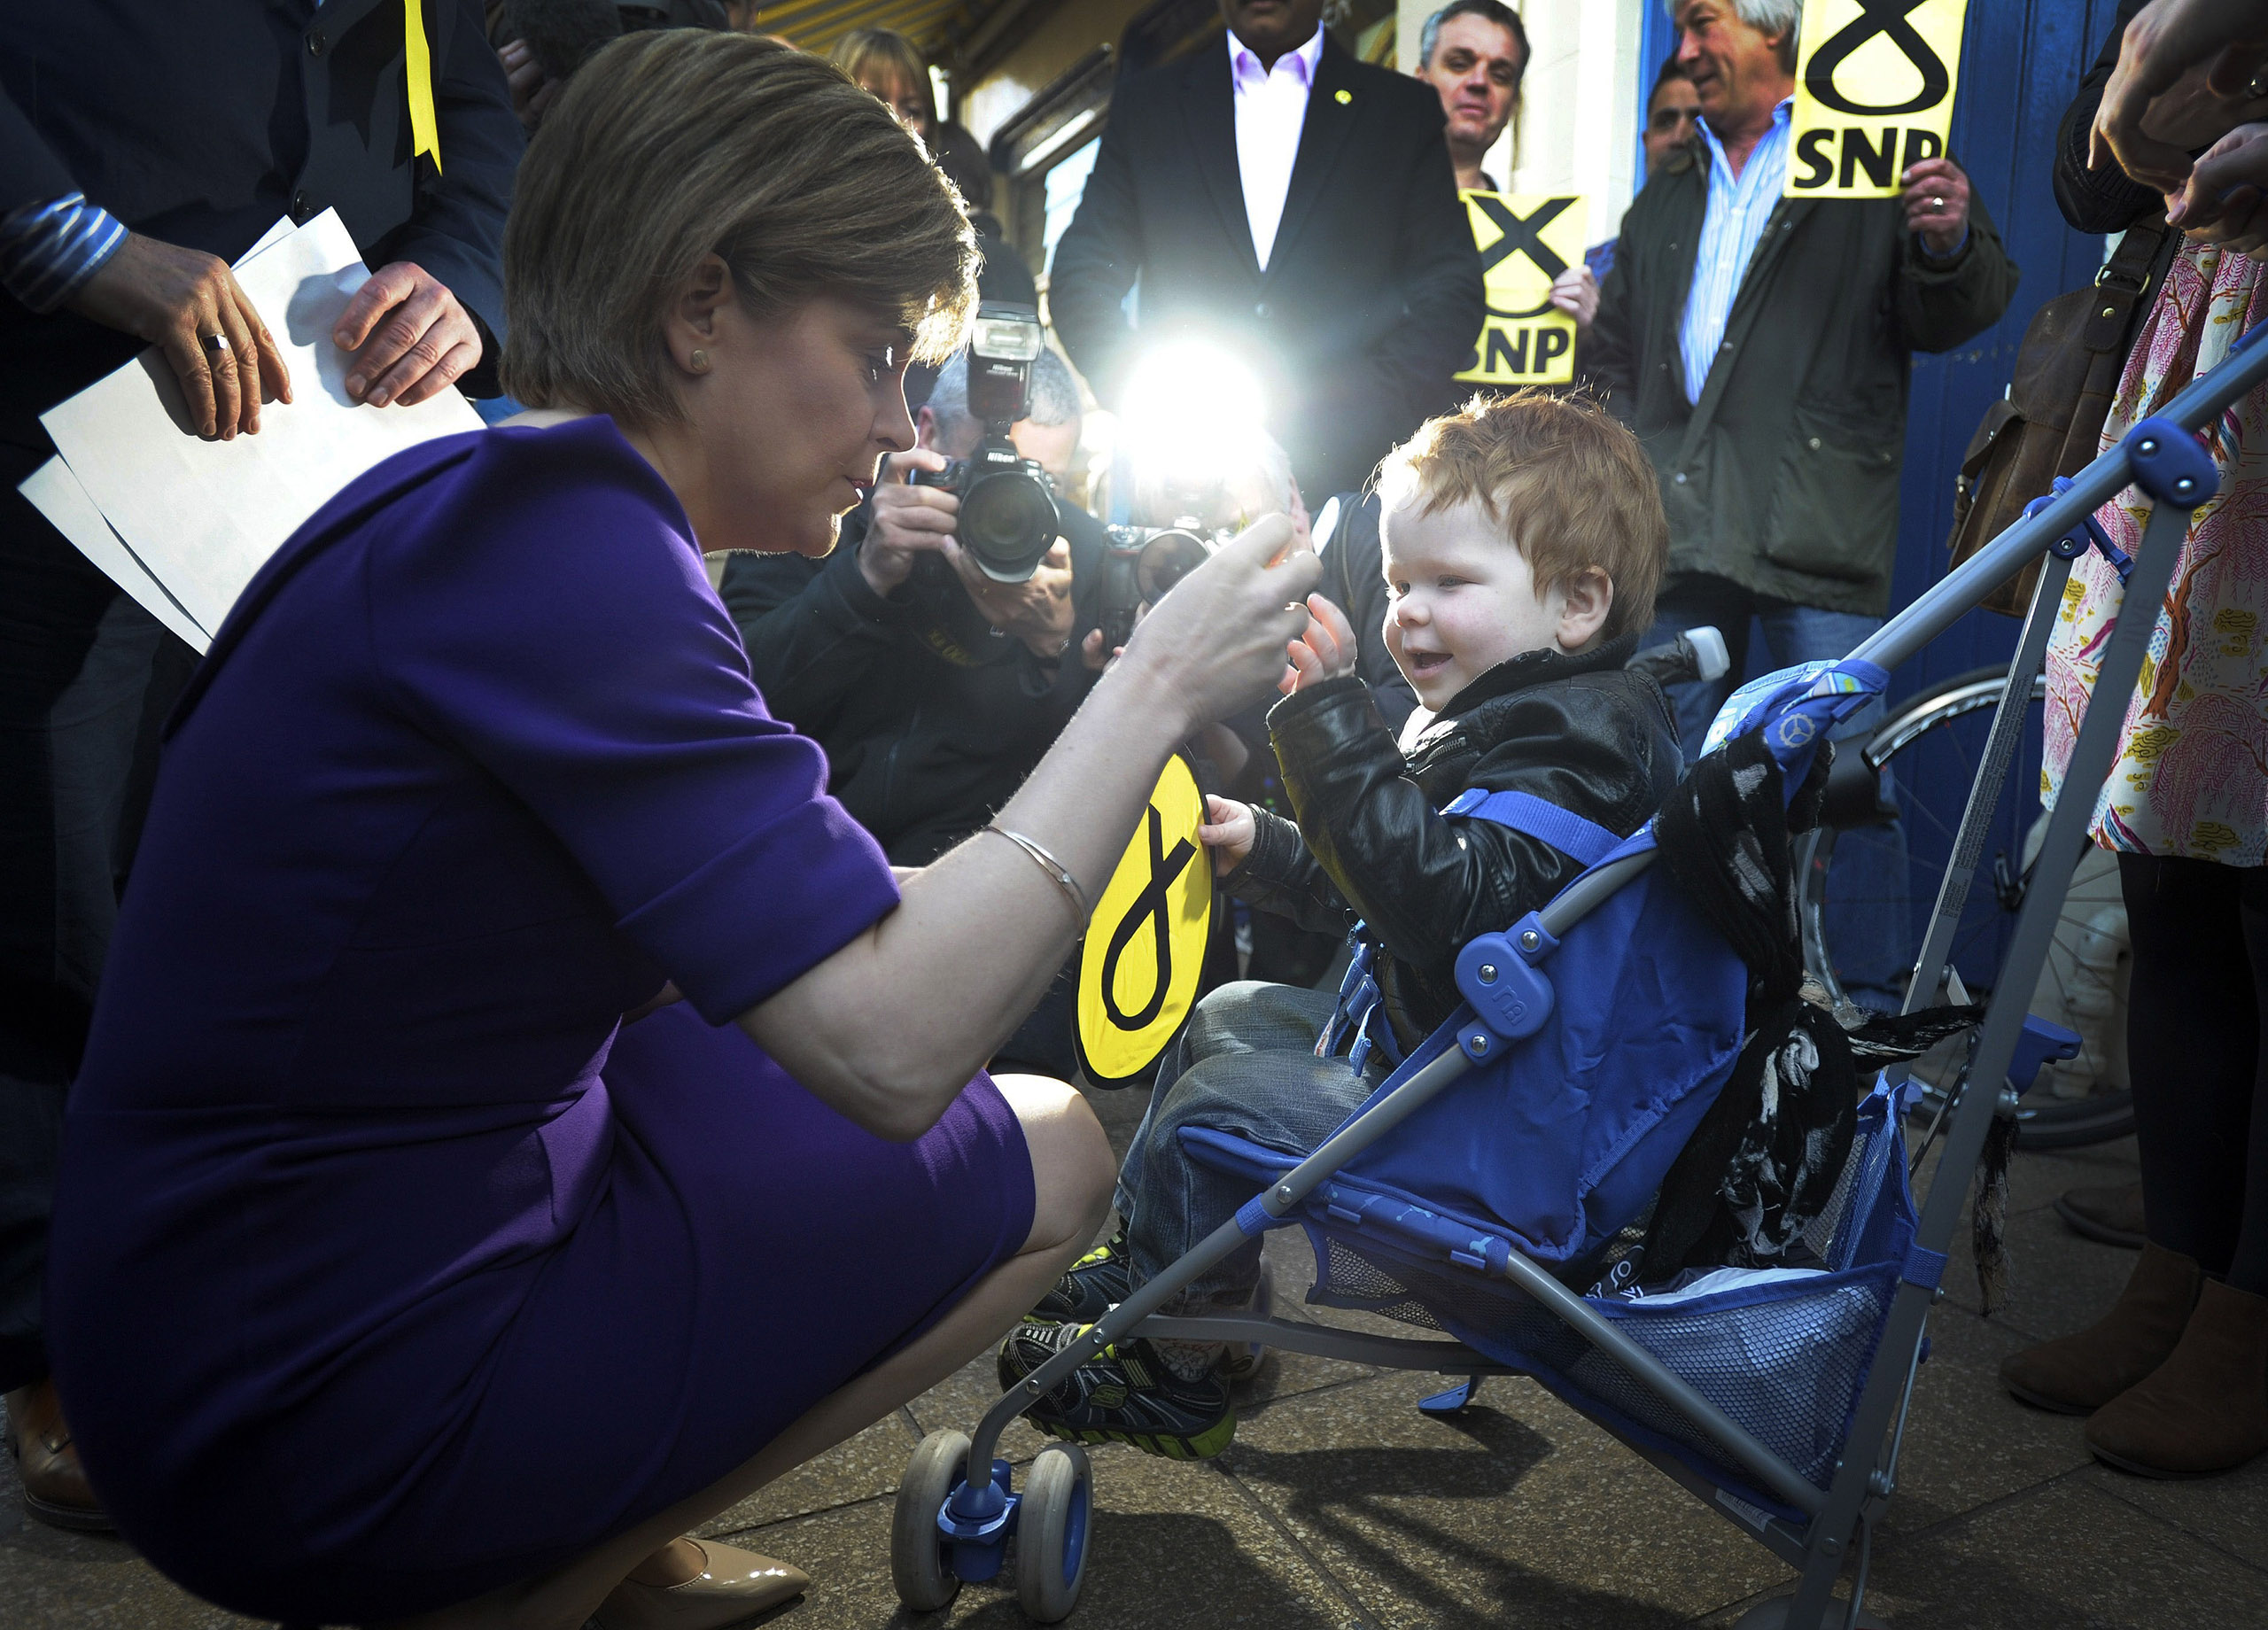 SNP leader Nicola Sturgeon greets a toddler as she campaigns in Edinburgh.